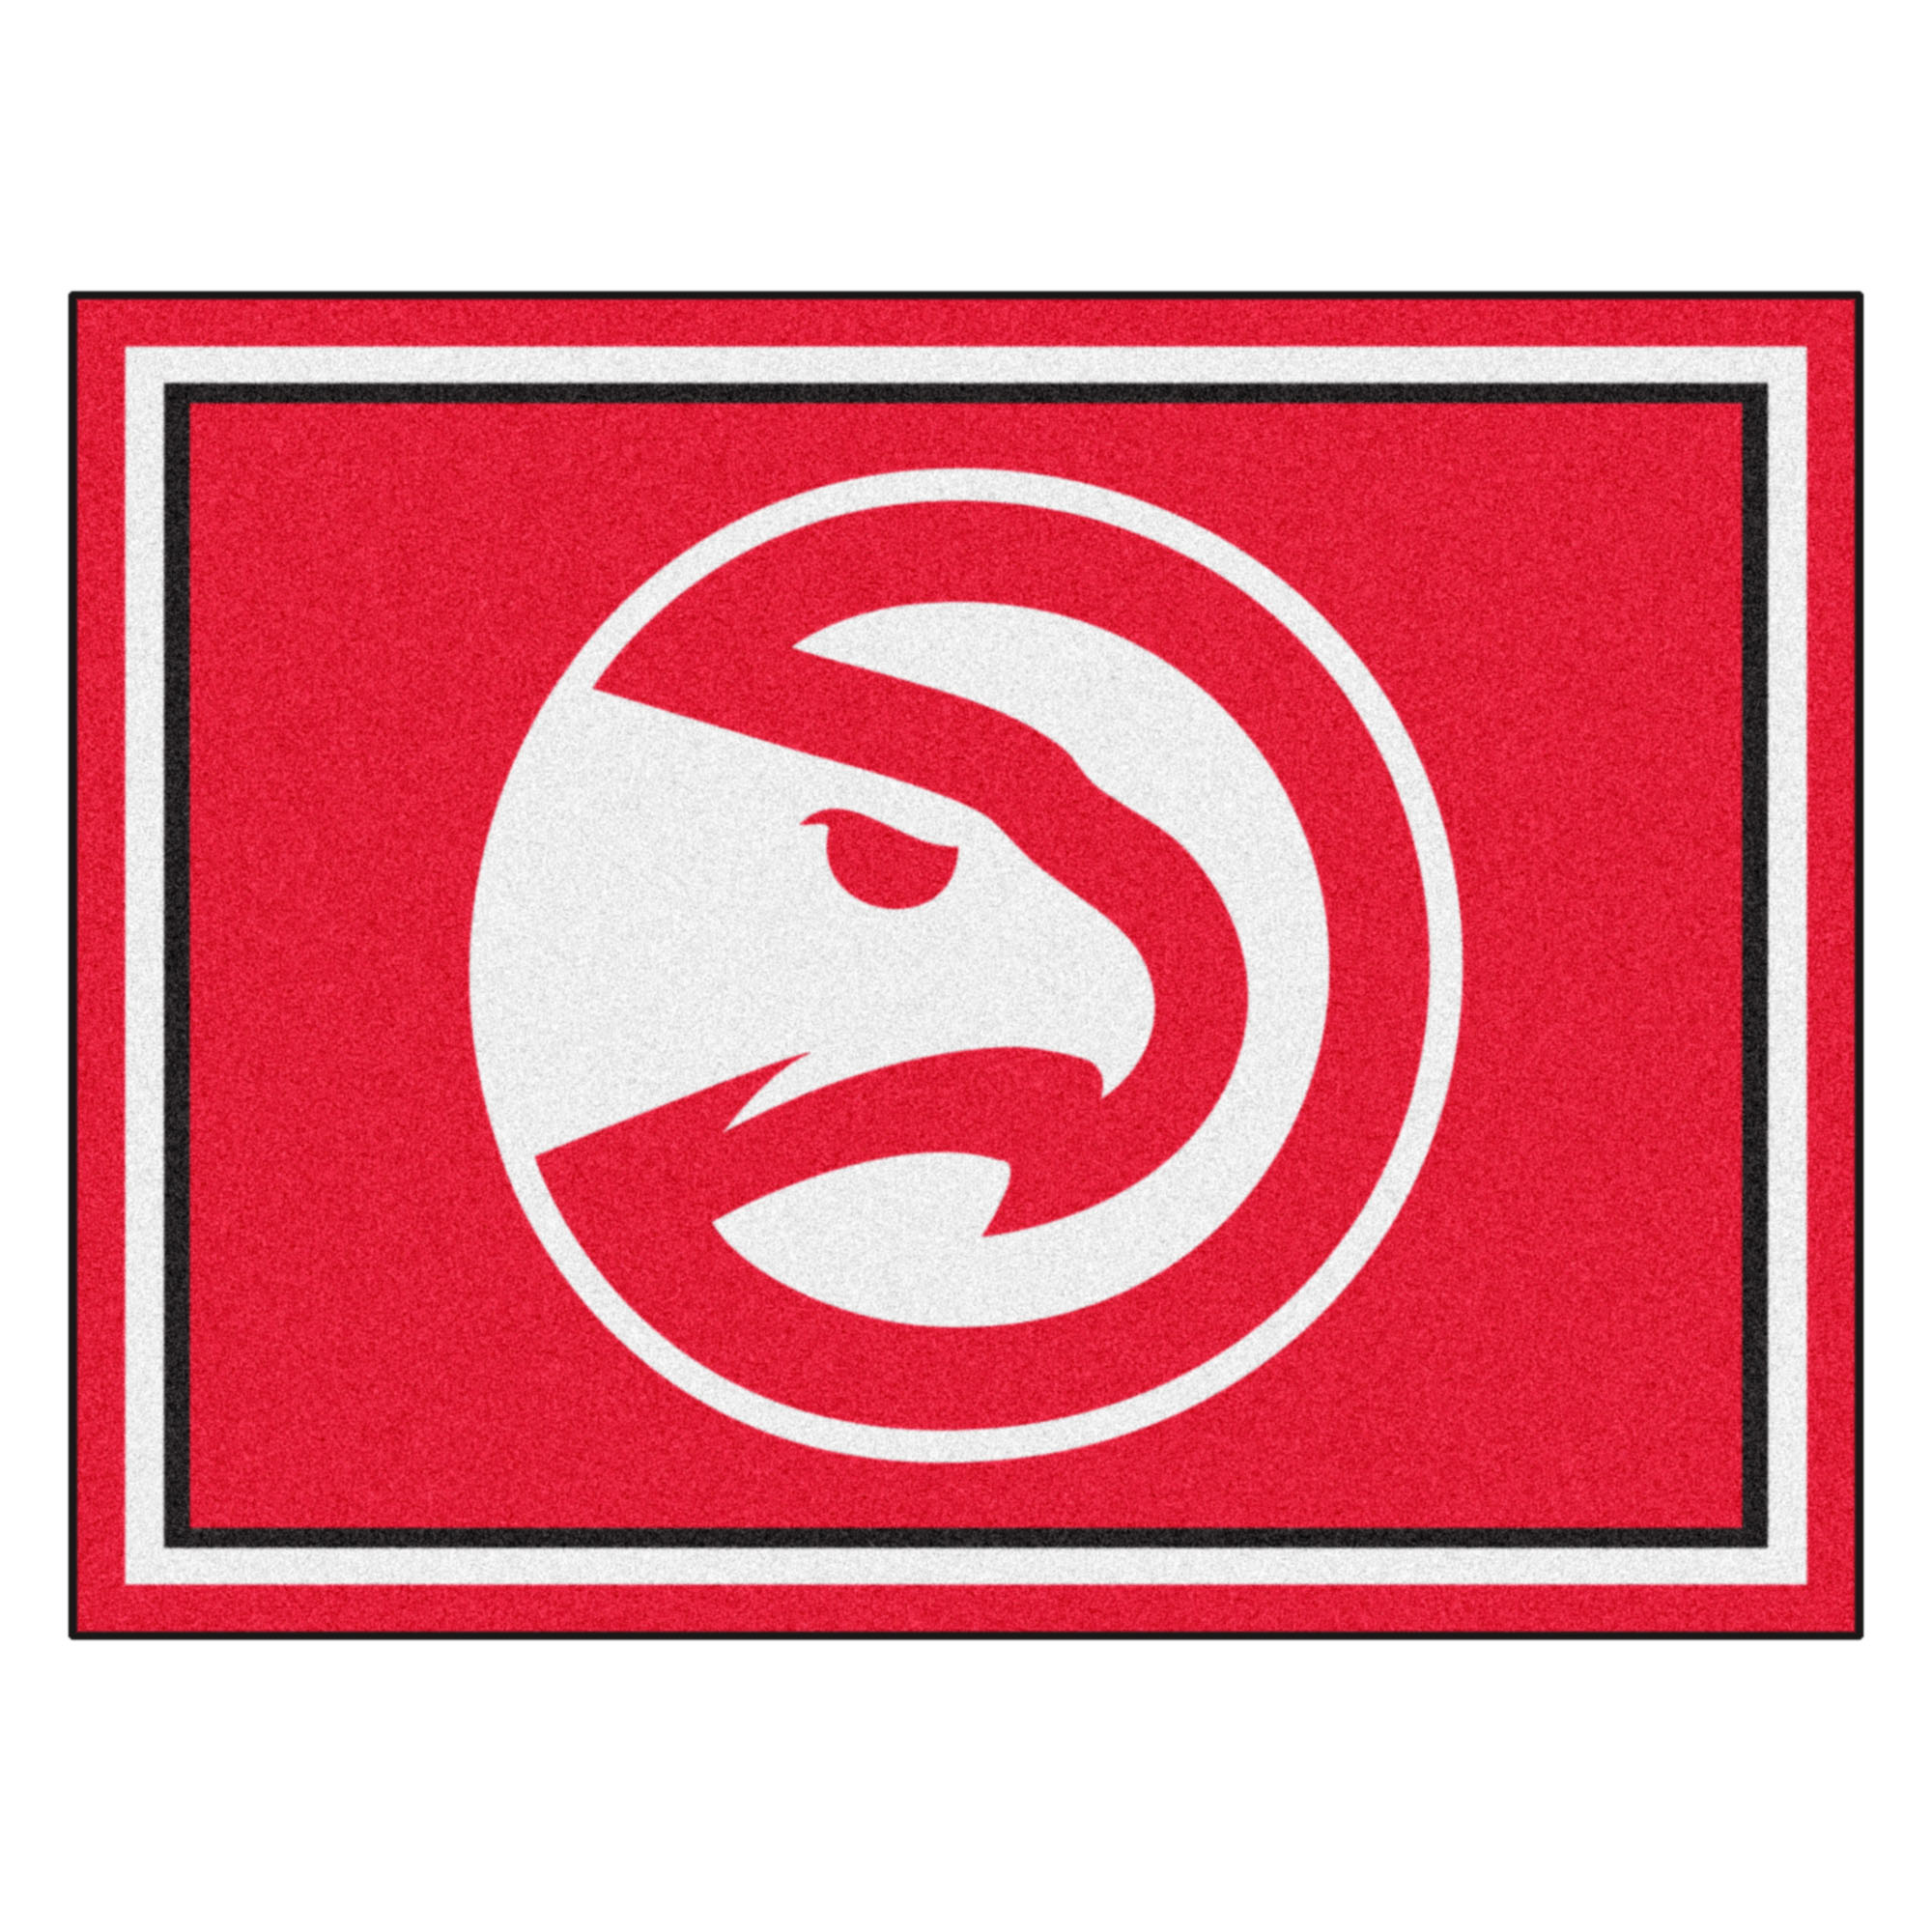 NBA Atlanta Hawks 8 x 10 Foot Plush Non-Skid Area Rug